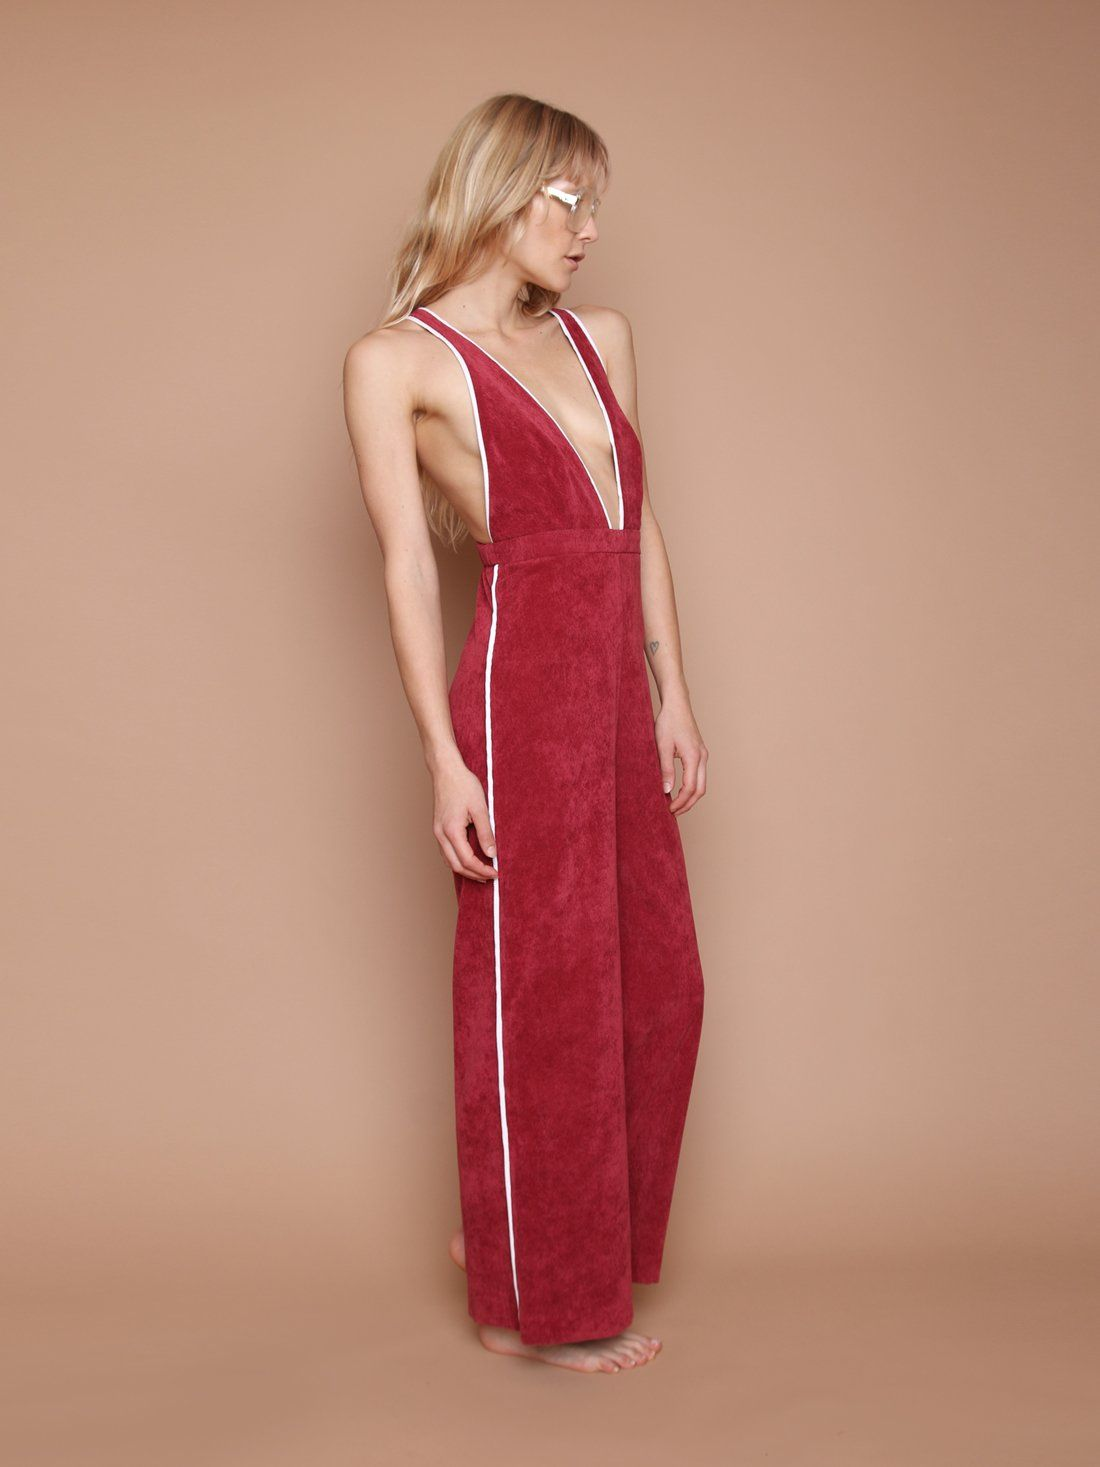 CAMP COLLECTION Jan Jumpsuit - Maroon Corduroy Jumpsuit | Maroon Corduroy| Camp Collection Jan Jumpsuit - Maroon Corduroy Side View Corduroy jumpsuit Ankle-length High waisted Wide leg  Cream piping throughout Adjustable straps   Dropped crotch  Center back invisible zipper  Elastic at back waist for comfy fit Dry clean only 90% polyester / 8% nylon / 2% elastane